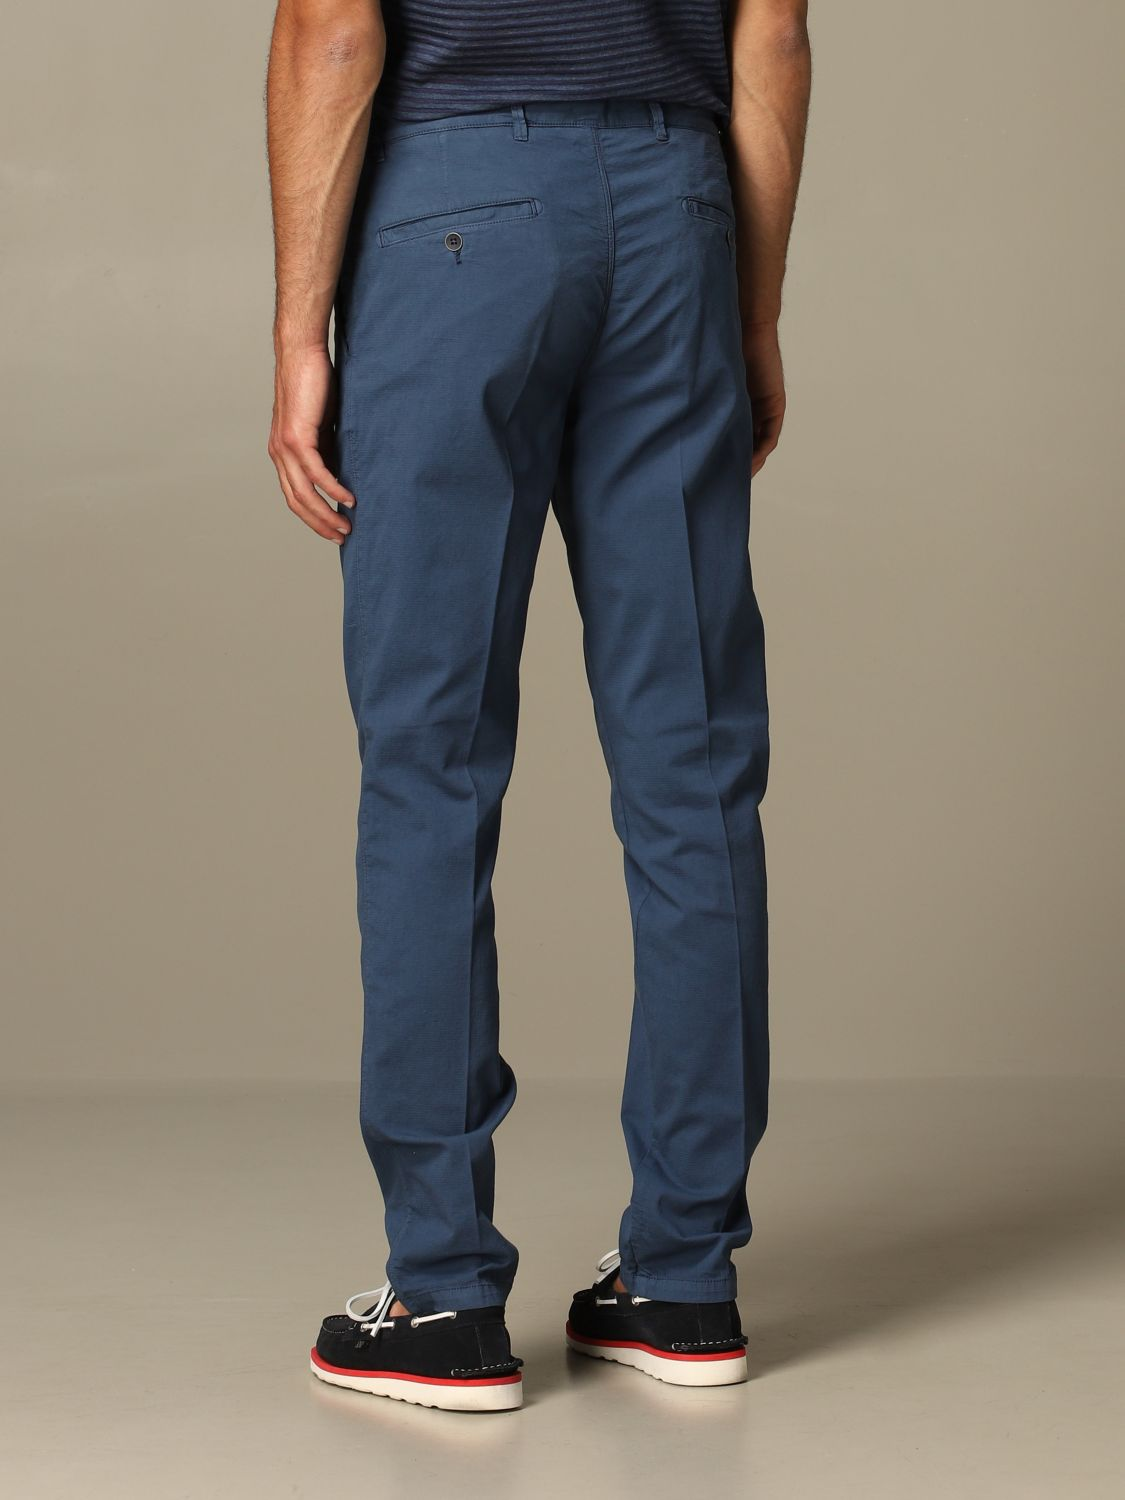 Hose Brooksfield: Hose herren Brooksfield blau 2